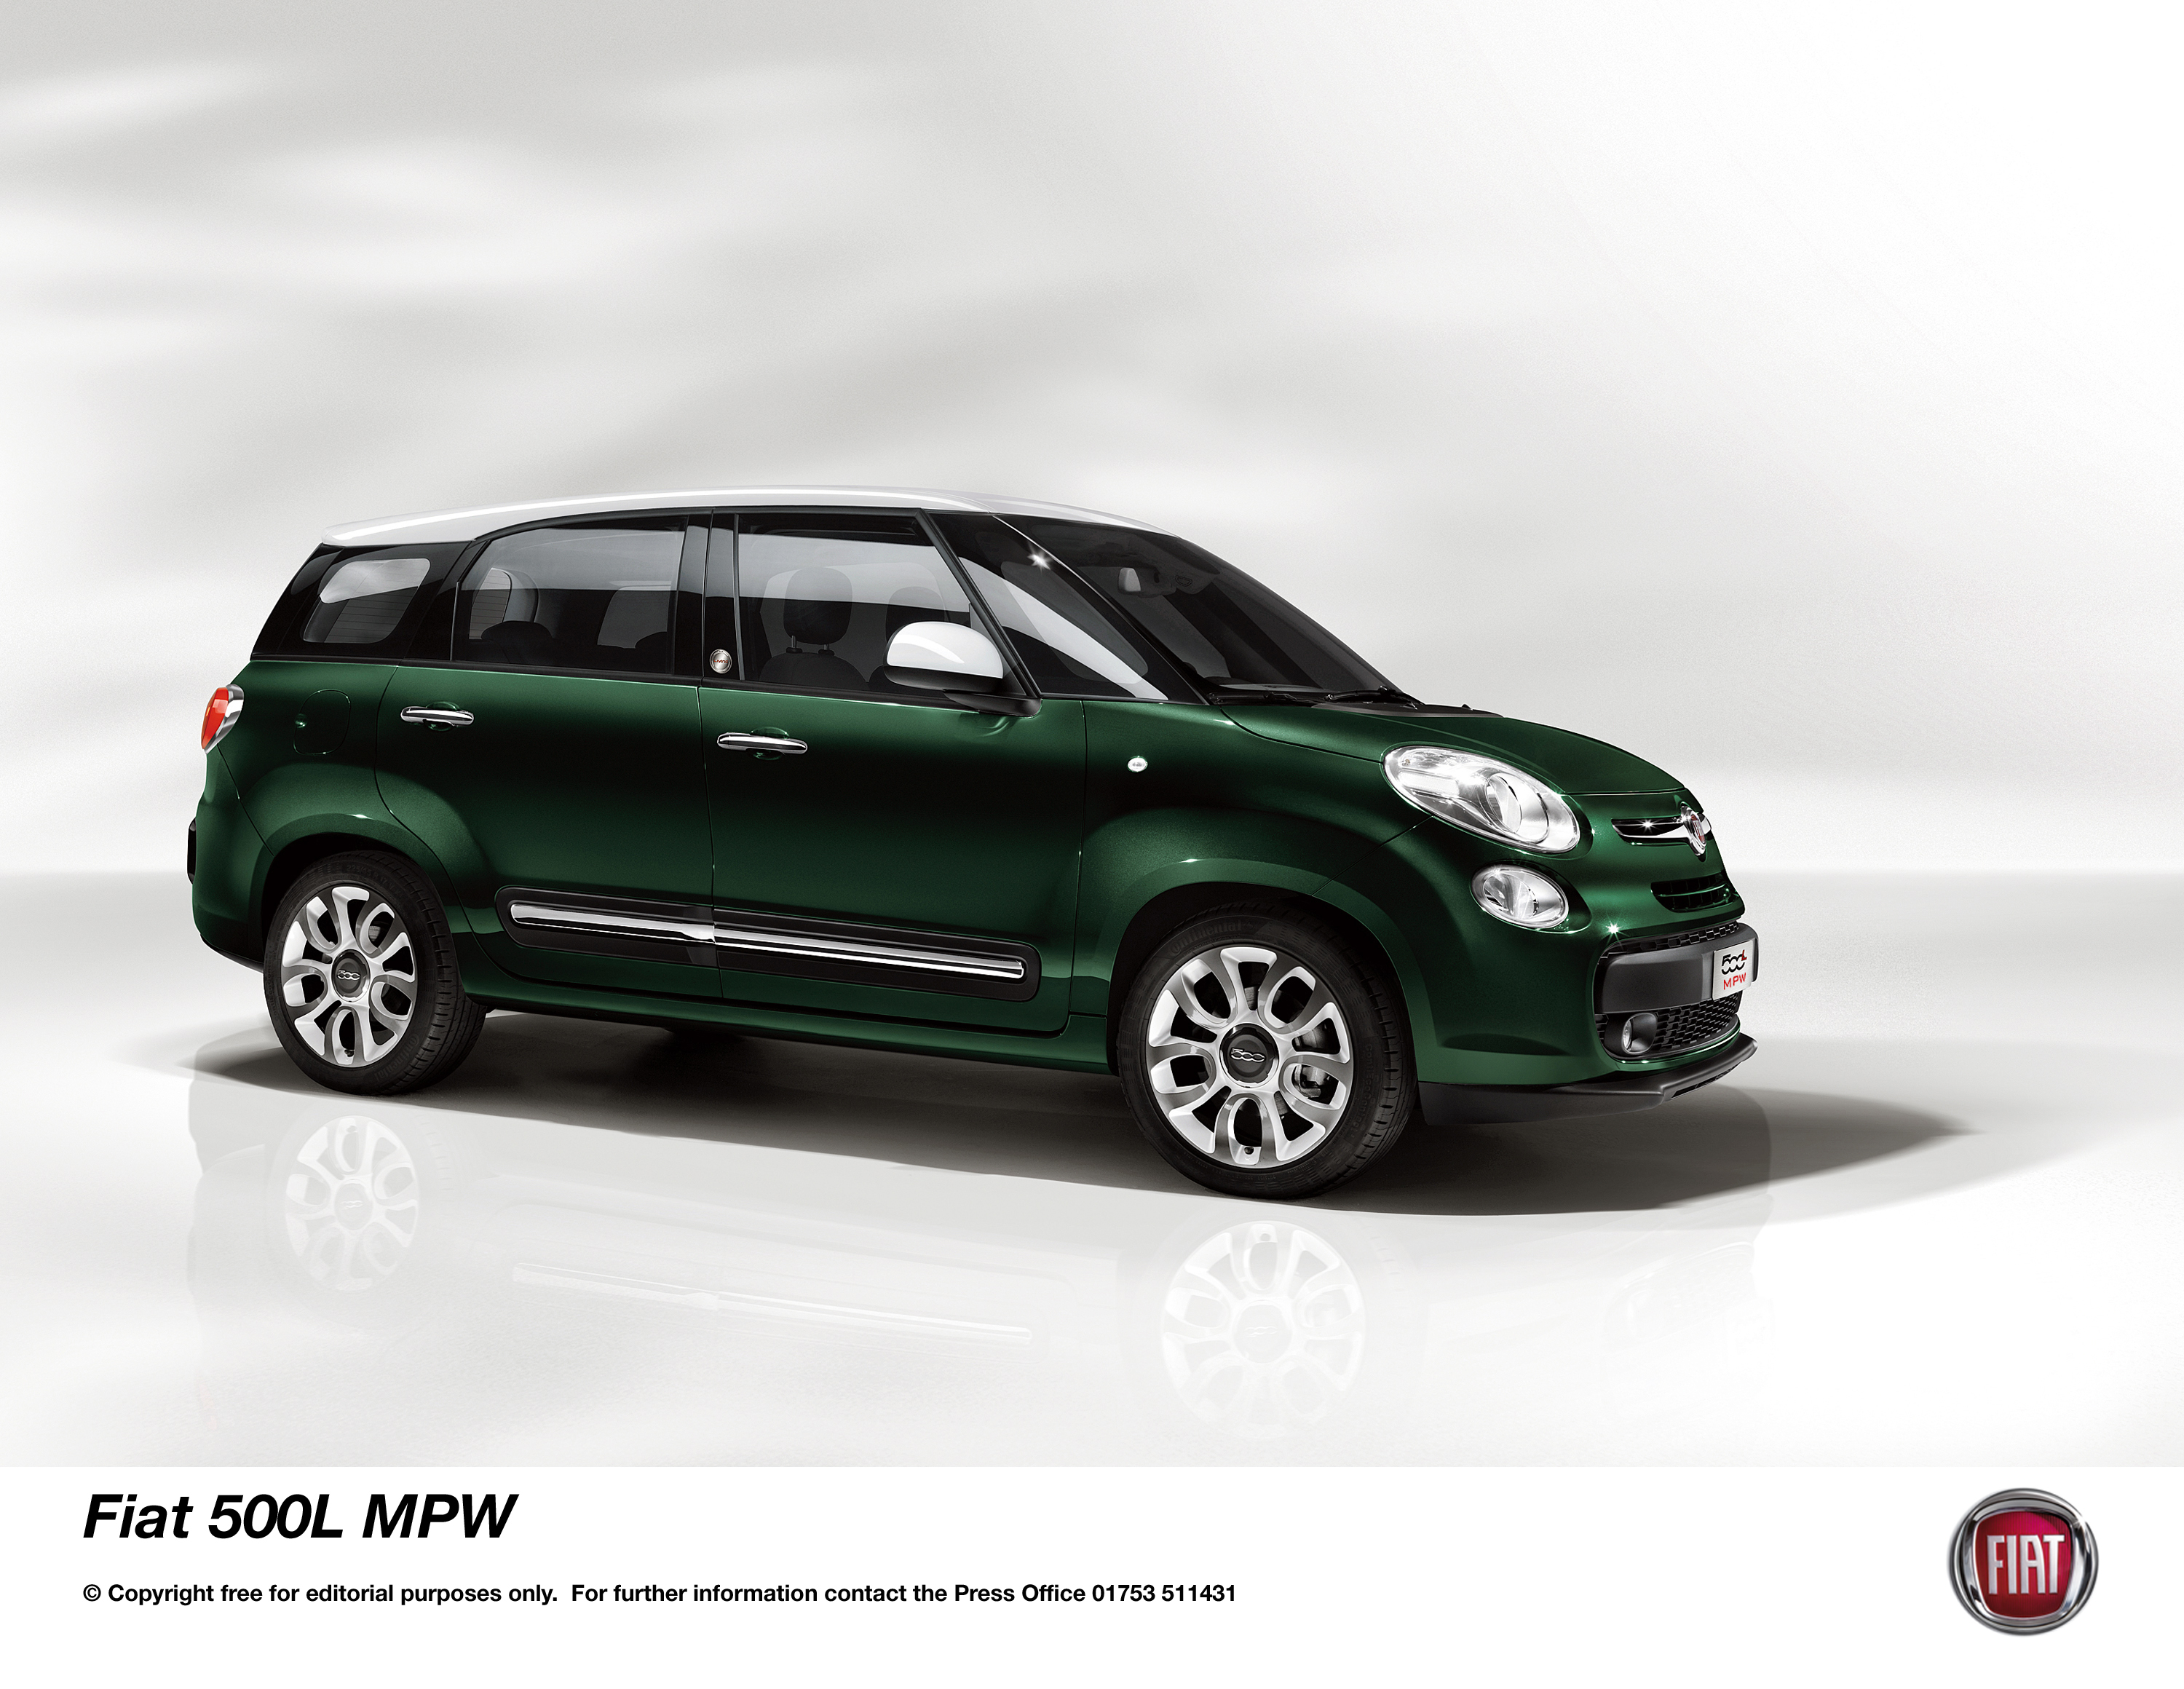 Fiat 500L Wagon best 2017